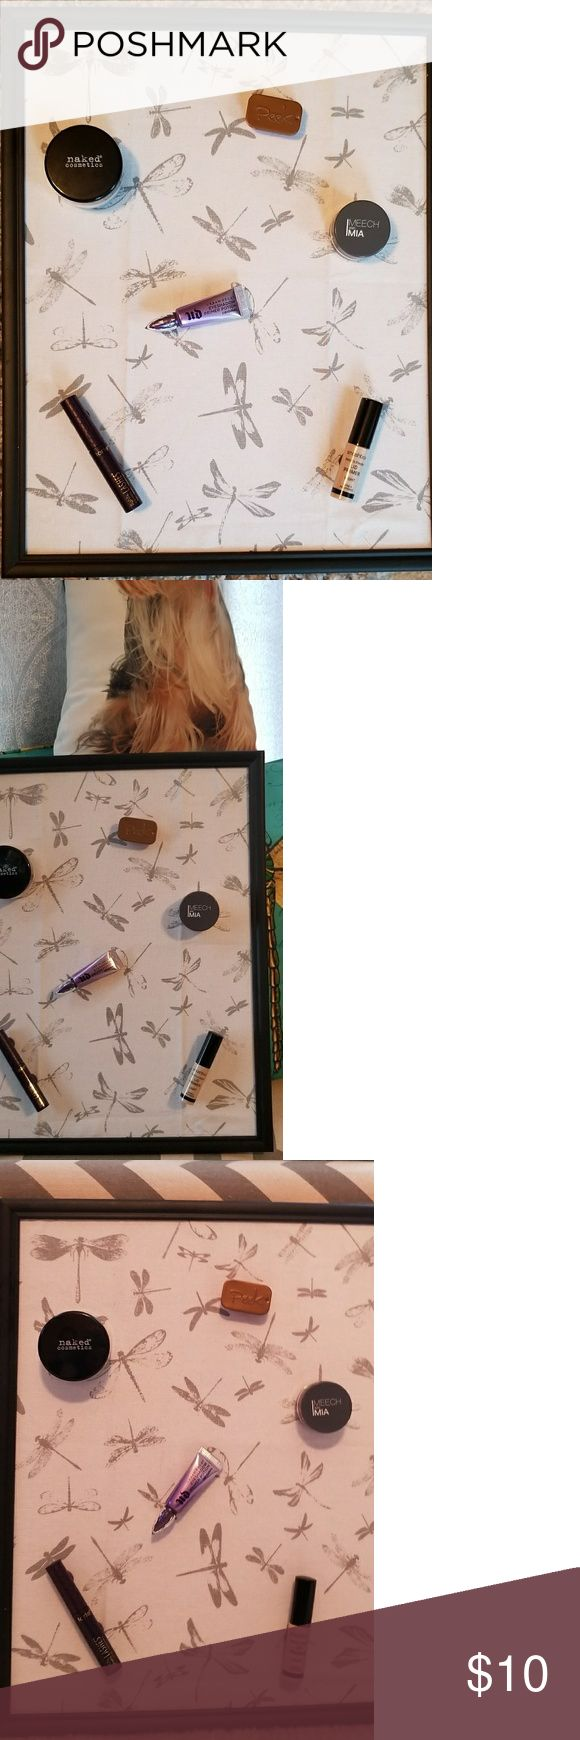 Magnetic makeup board 11x13 black frame with dragonfly print make-up board. (Make-up not included) Glue a magnet to your favorite make-up and hang on wall for easy access. Bundle and save Makeup